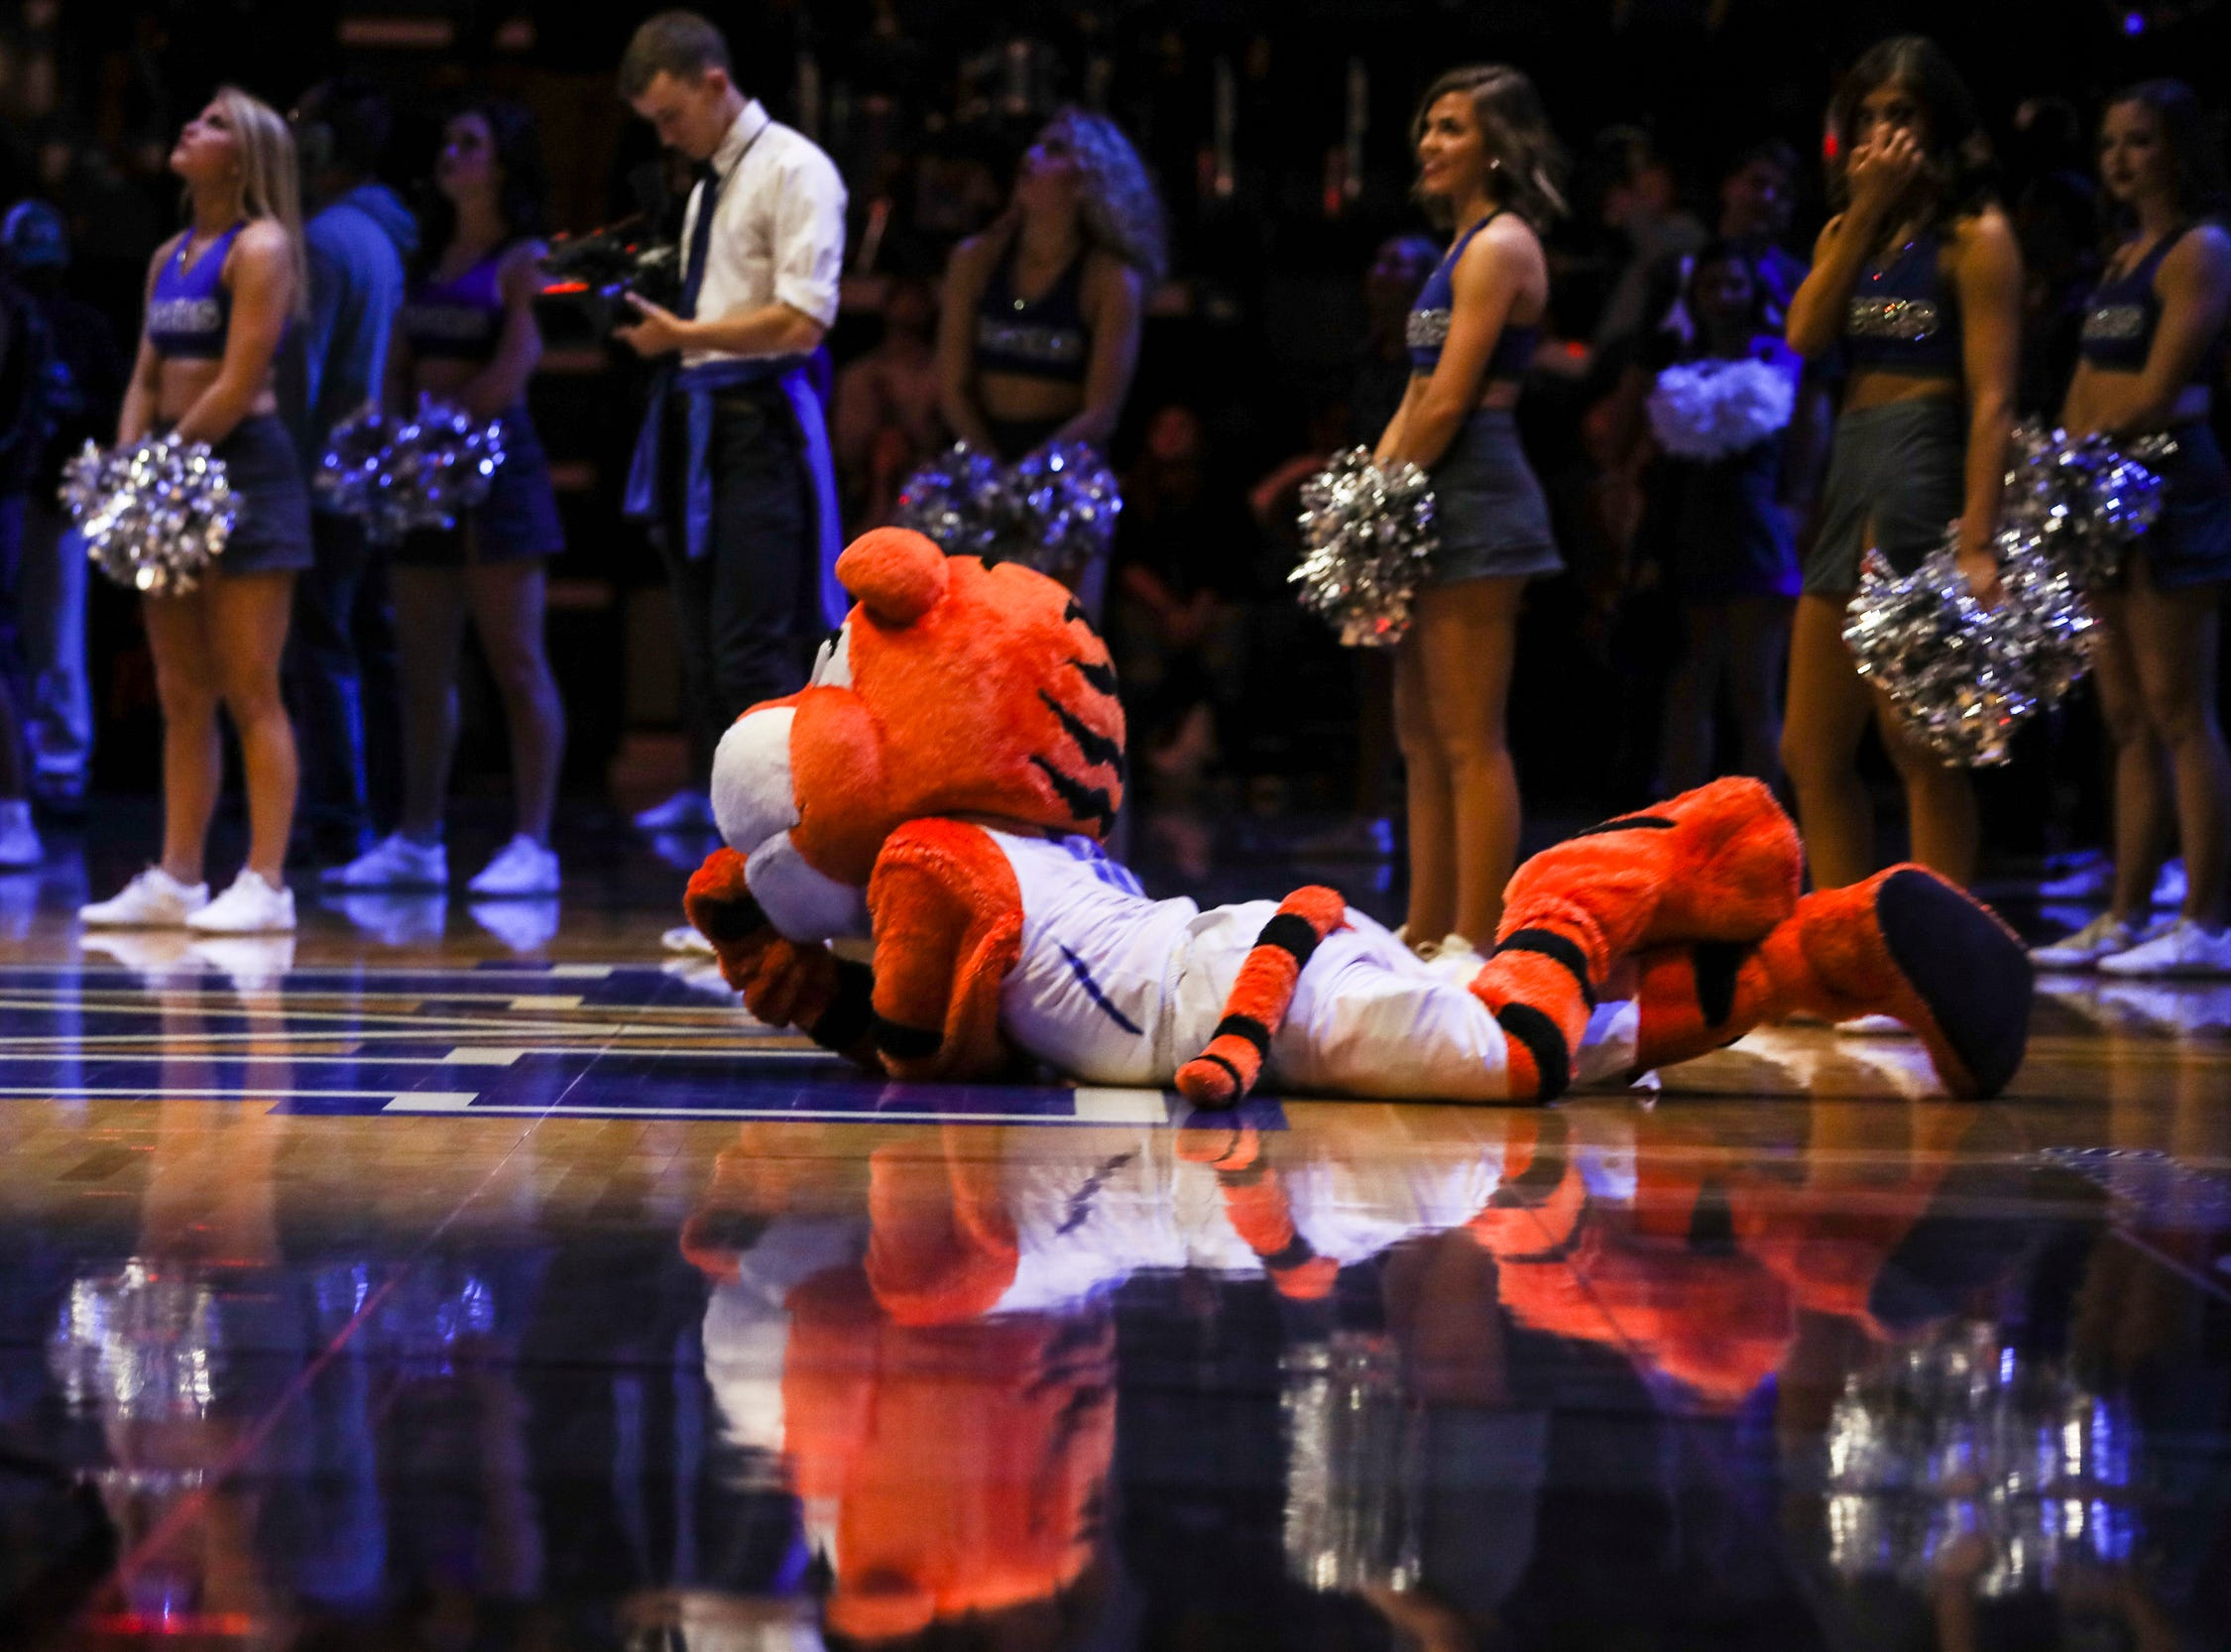 January 27 2019 - Pouncer is seen on the court before the start of Sunday afternoon's game against UCF at the FedExForum in Memphis.